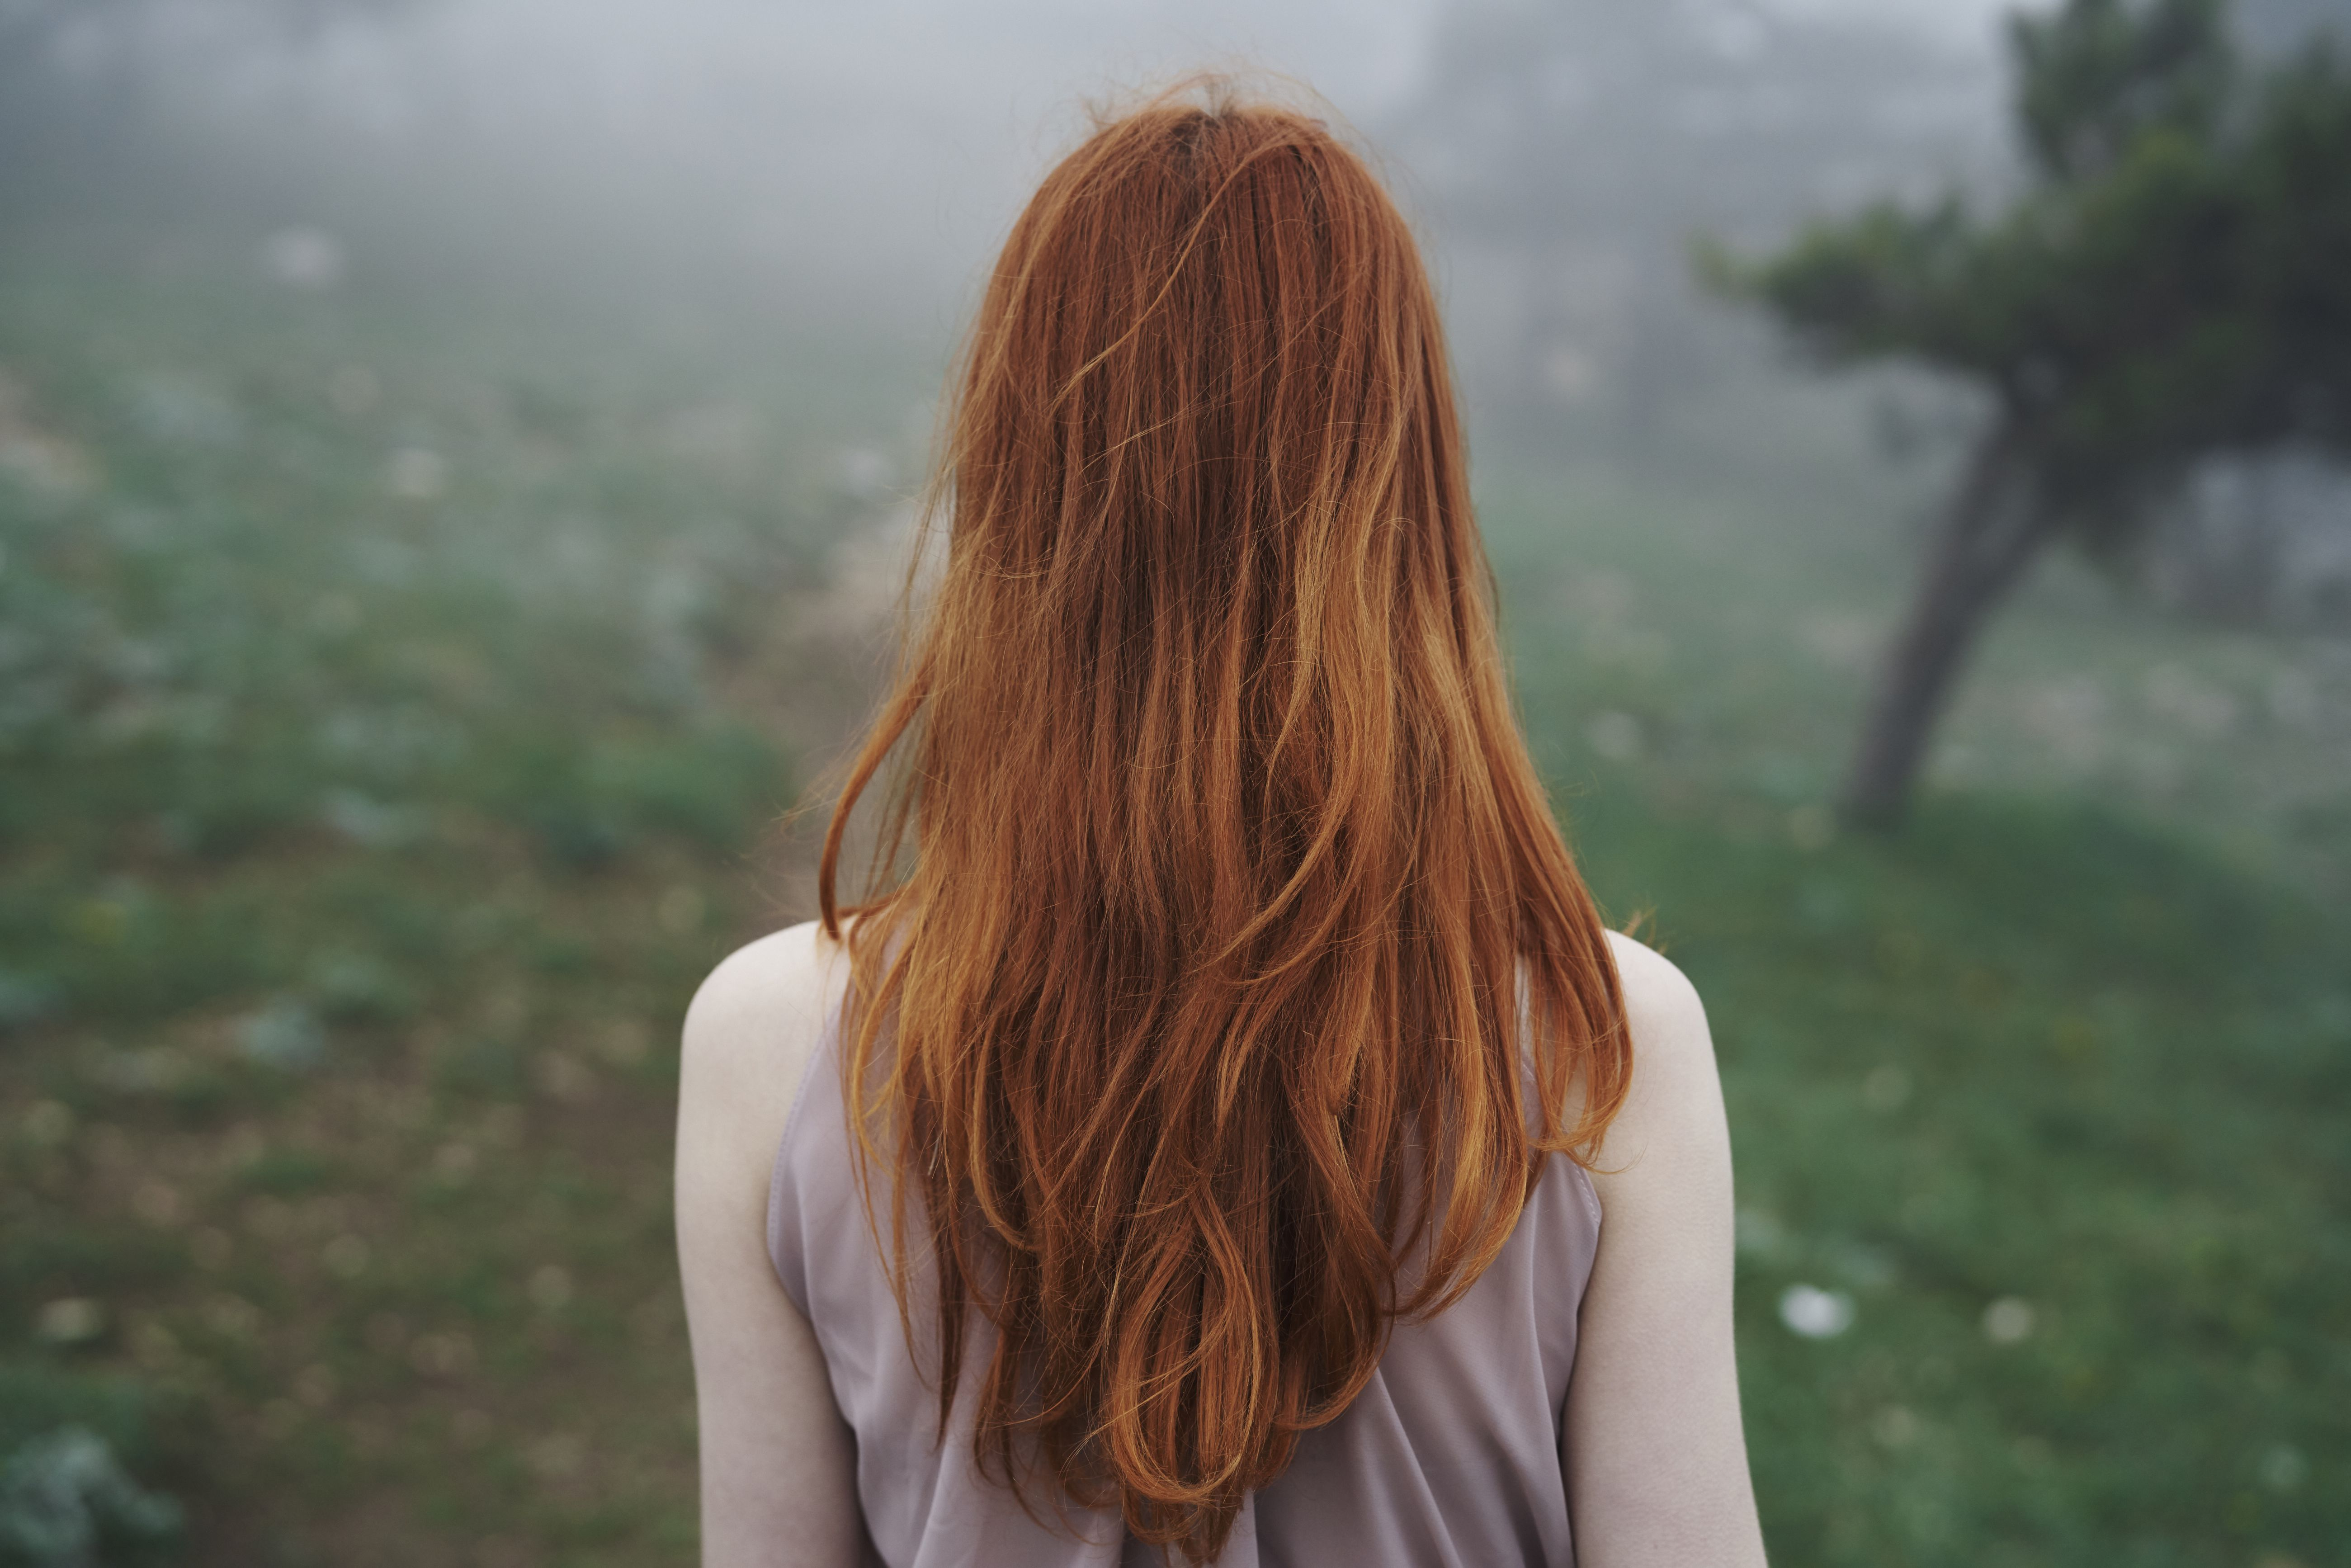 Rear view of Caucasian woman with red hair